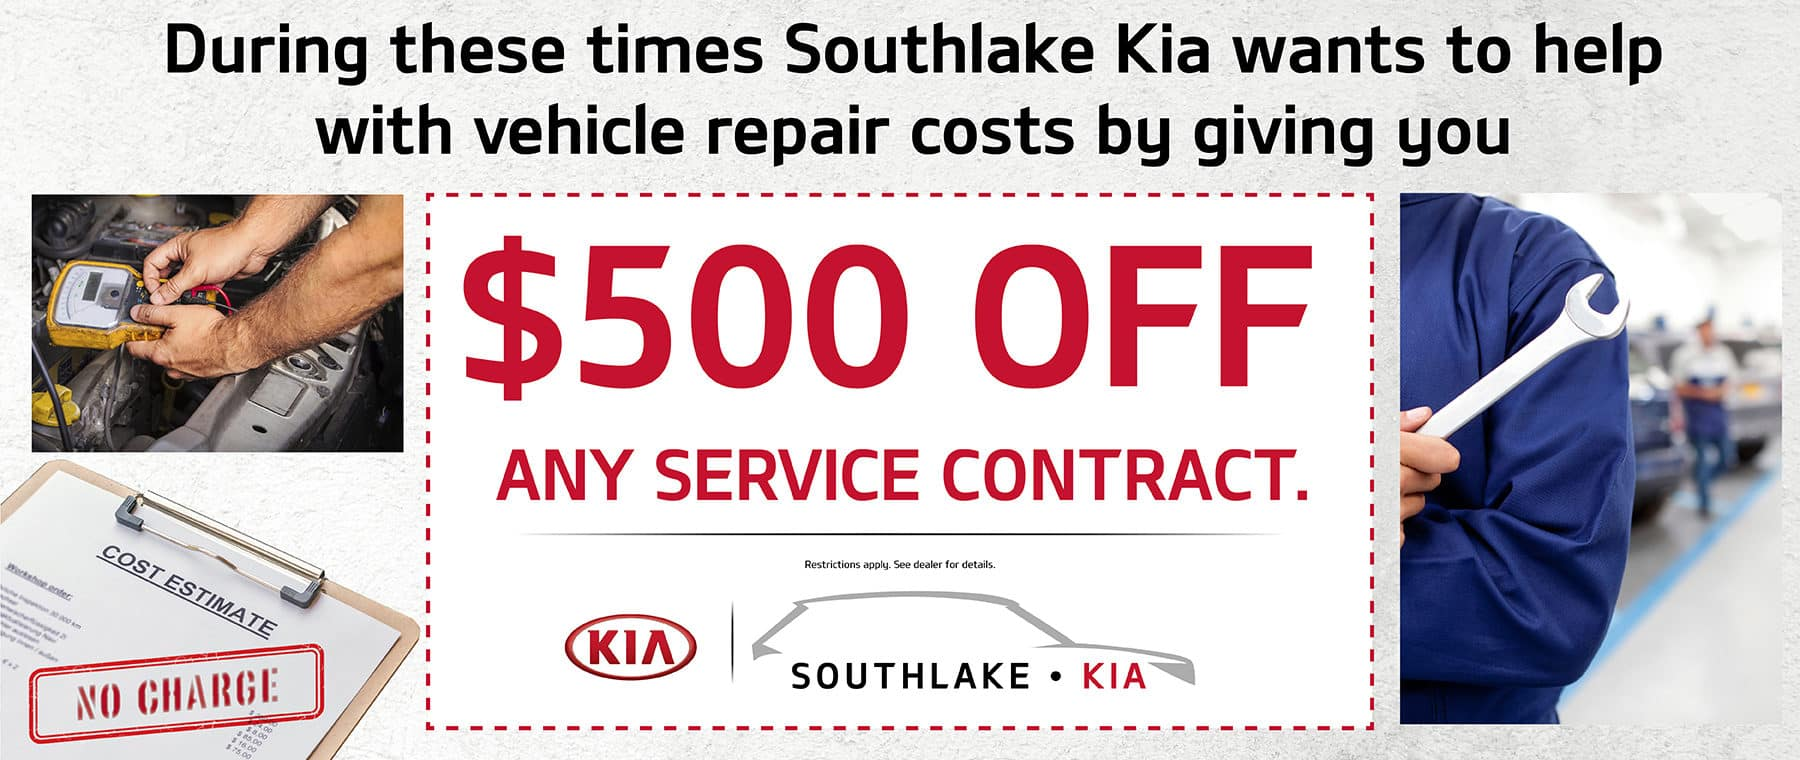 Southlake Kia wants to help with vehicle repair costs